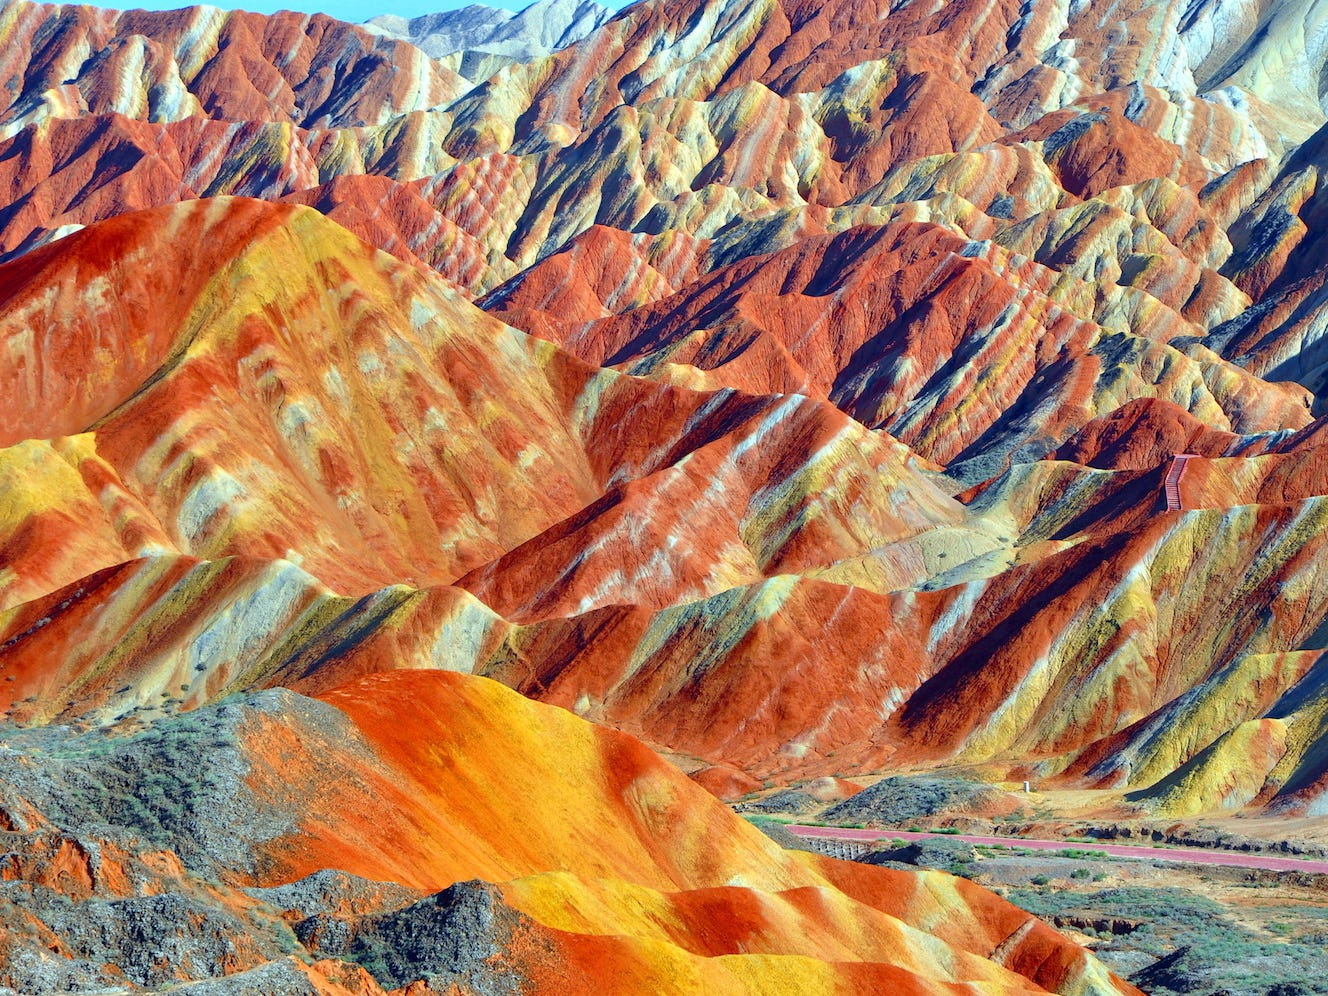 Slide 22 of 51: Danxia refers to a special type of landscape found in southwestern China. The colorful, striped mountains are made up of layers of minerals and rock, which were disrupted when tectonic plates caused the island that is nowIndia to collide with the rest of the Eurasiacontinent.Now a protectedUNESCO World Heritage Site, the once little-known wonder is a popular tourist draw — and for good reason. Chances are you've never seen anything like it before.